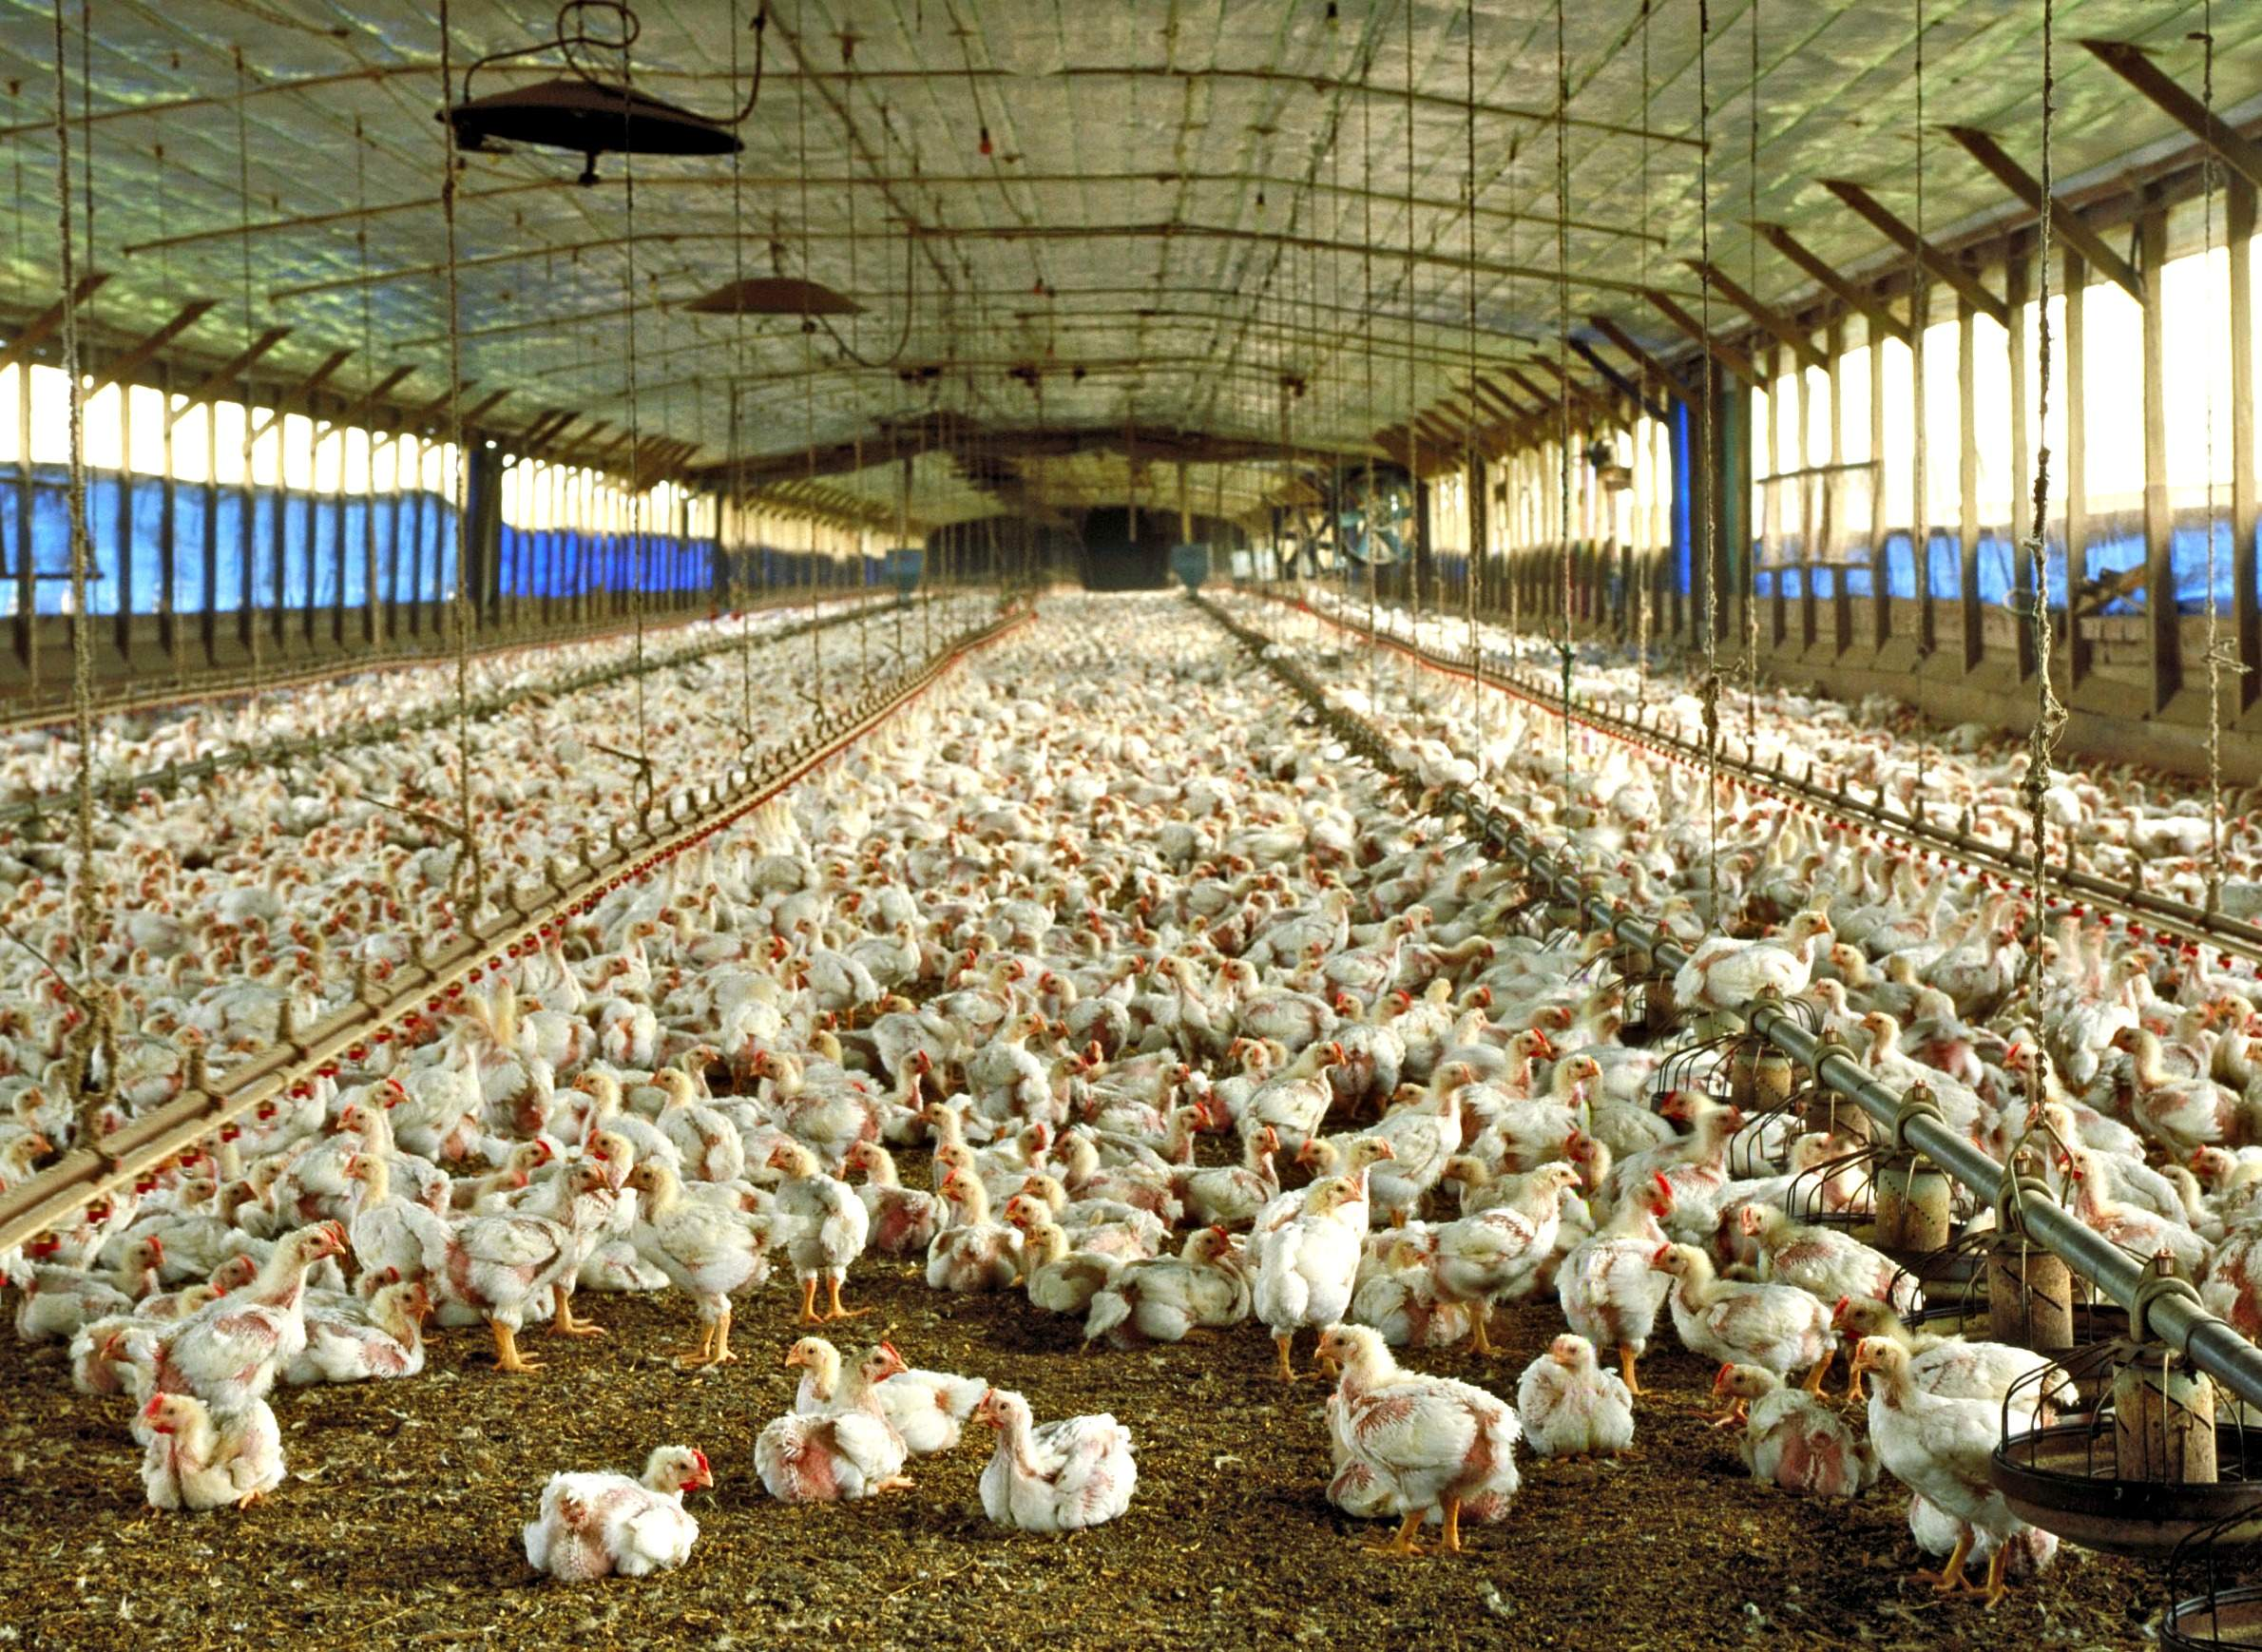 A poultry barn floor covered by young chickens